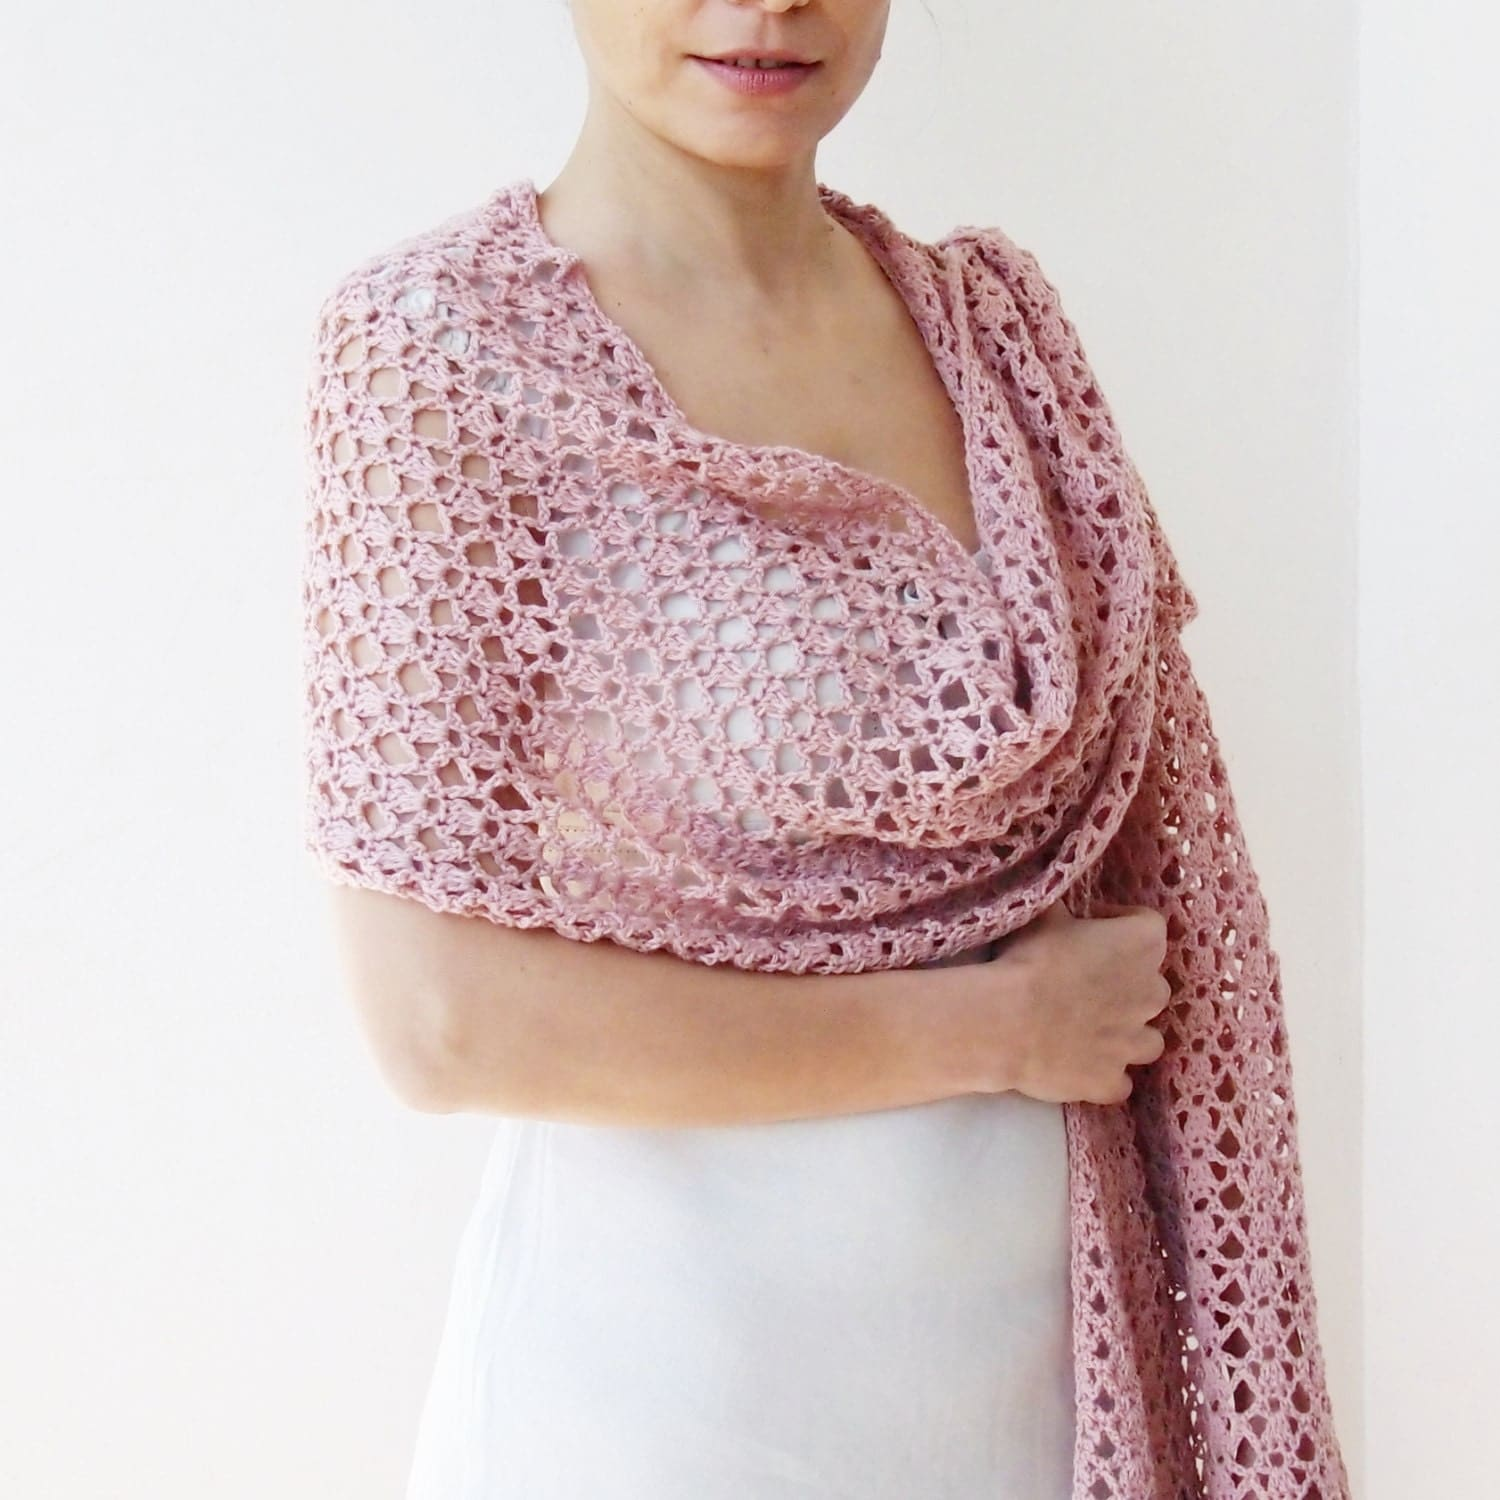 Crochet shrug pattern woman crochet clothing long sleeves shrug crochet pattern woman scarf long lace wrap women shawl stole wedding shawl spring wrap summer scarf diy tutorial bankloansurffo Images